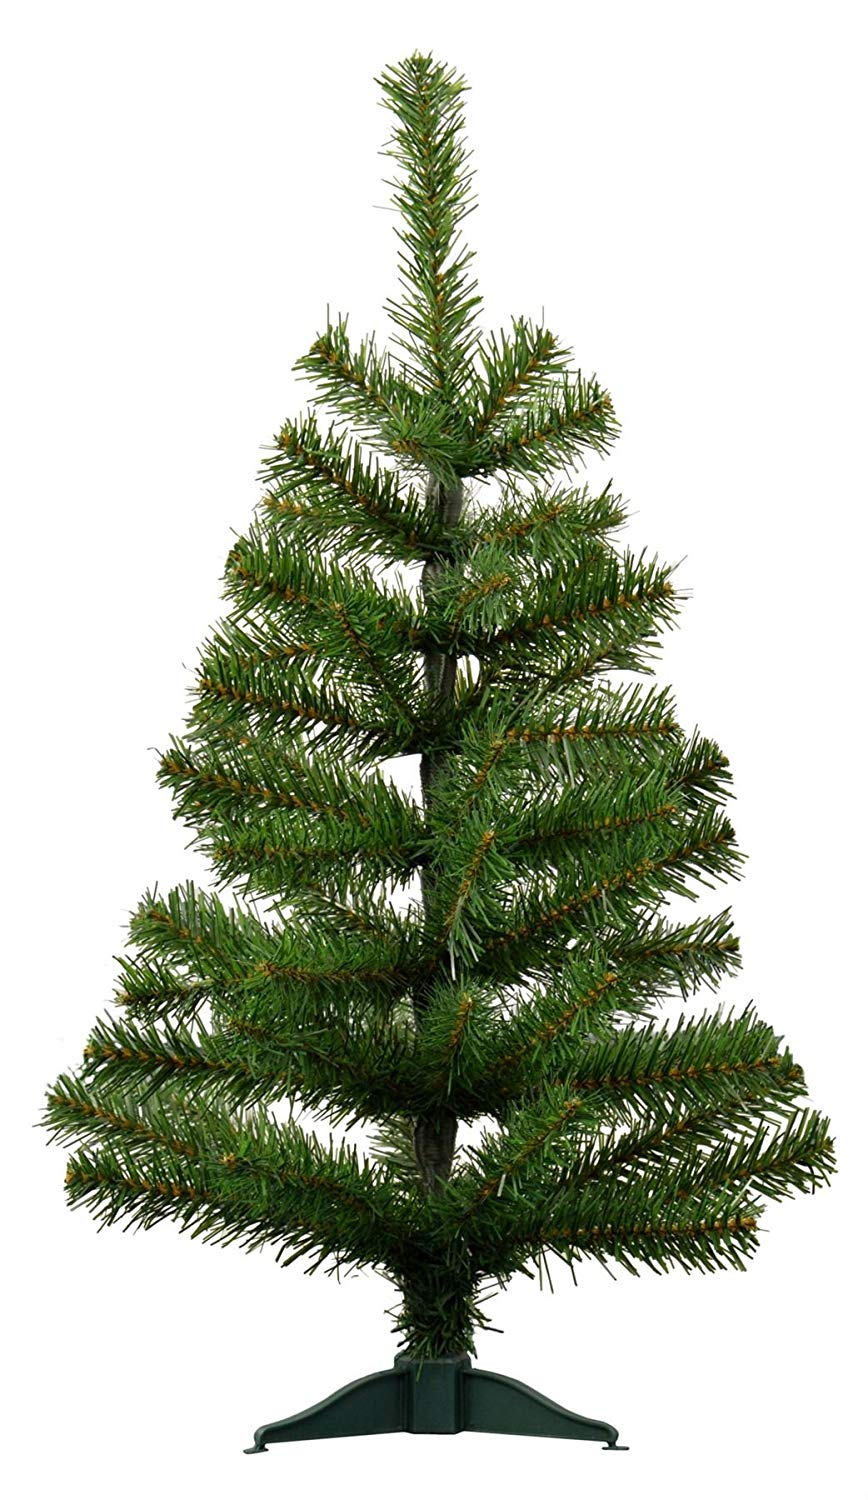 Harbour Housewares 2ft (60cm) Artificial Pine Christmas Tree with Stand